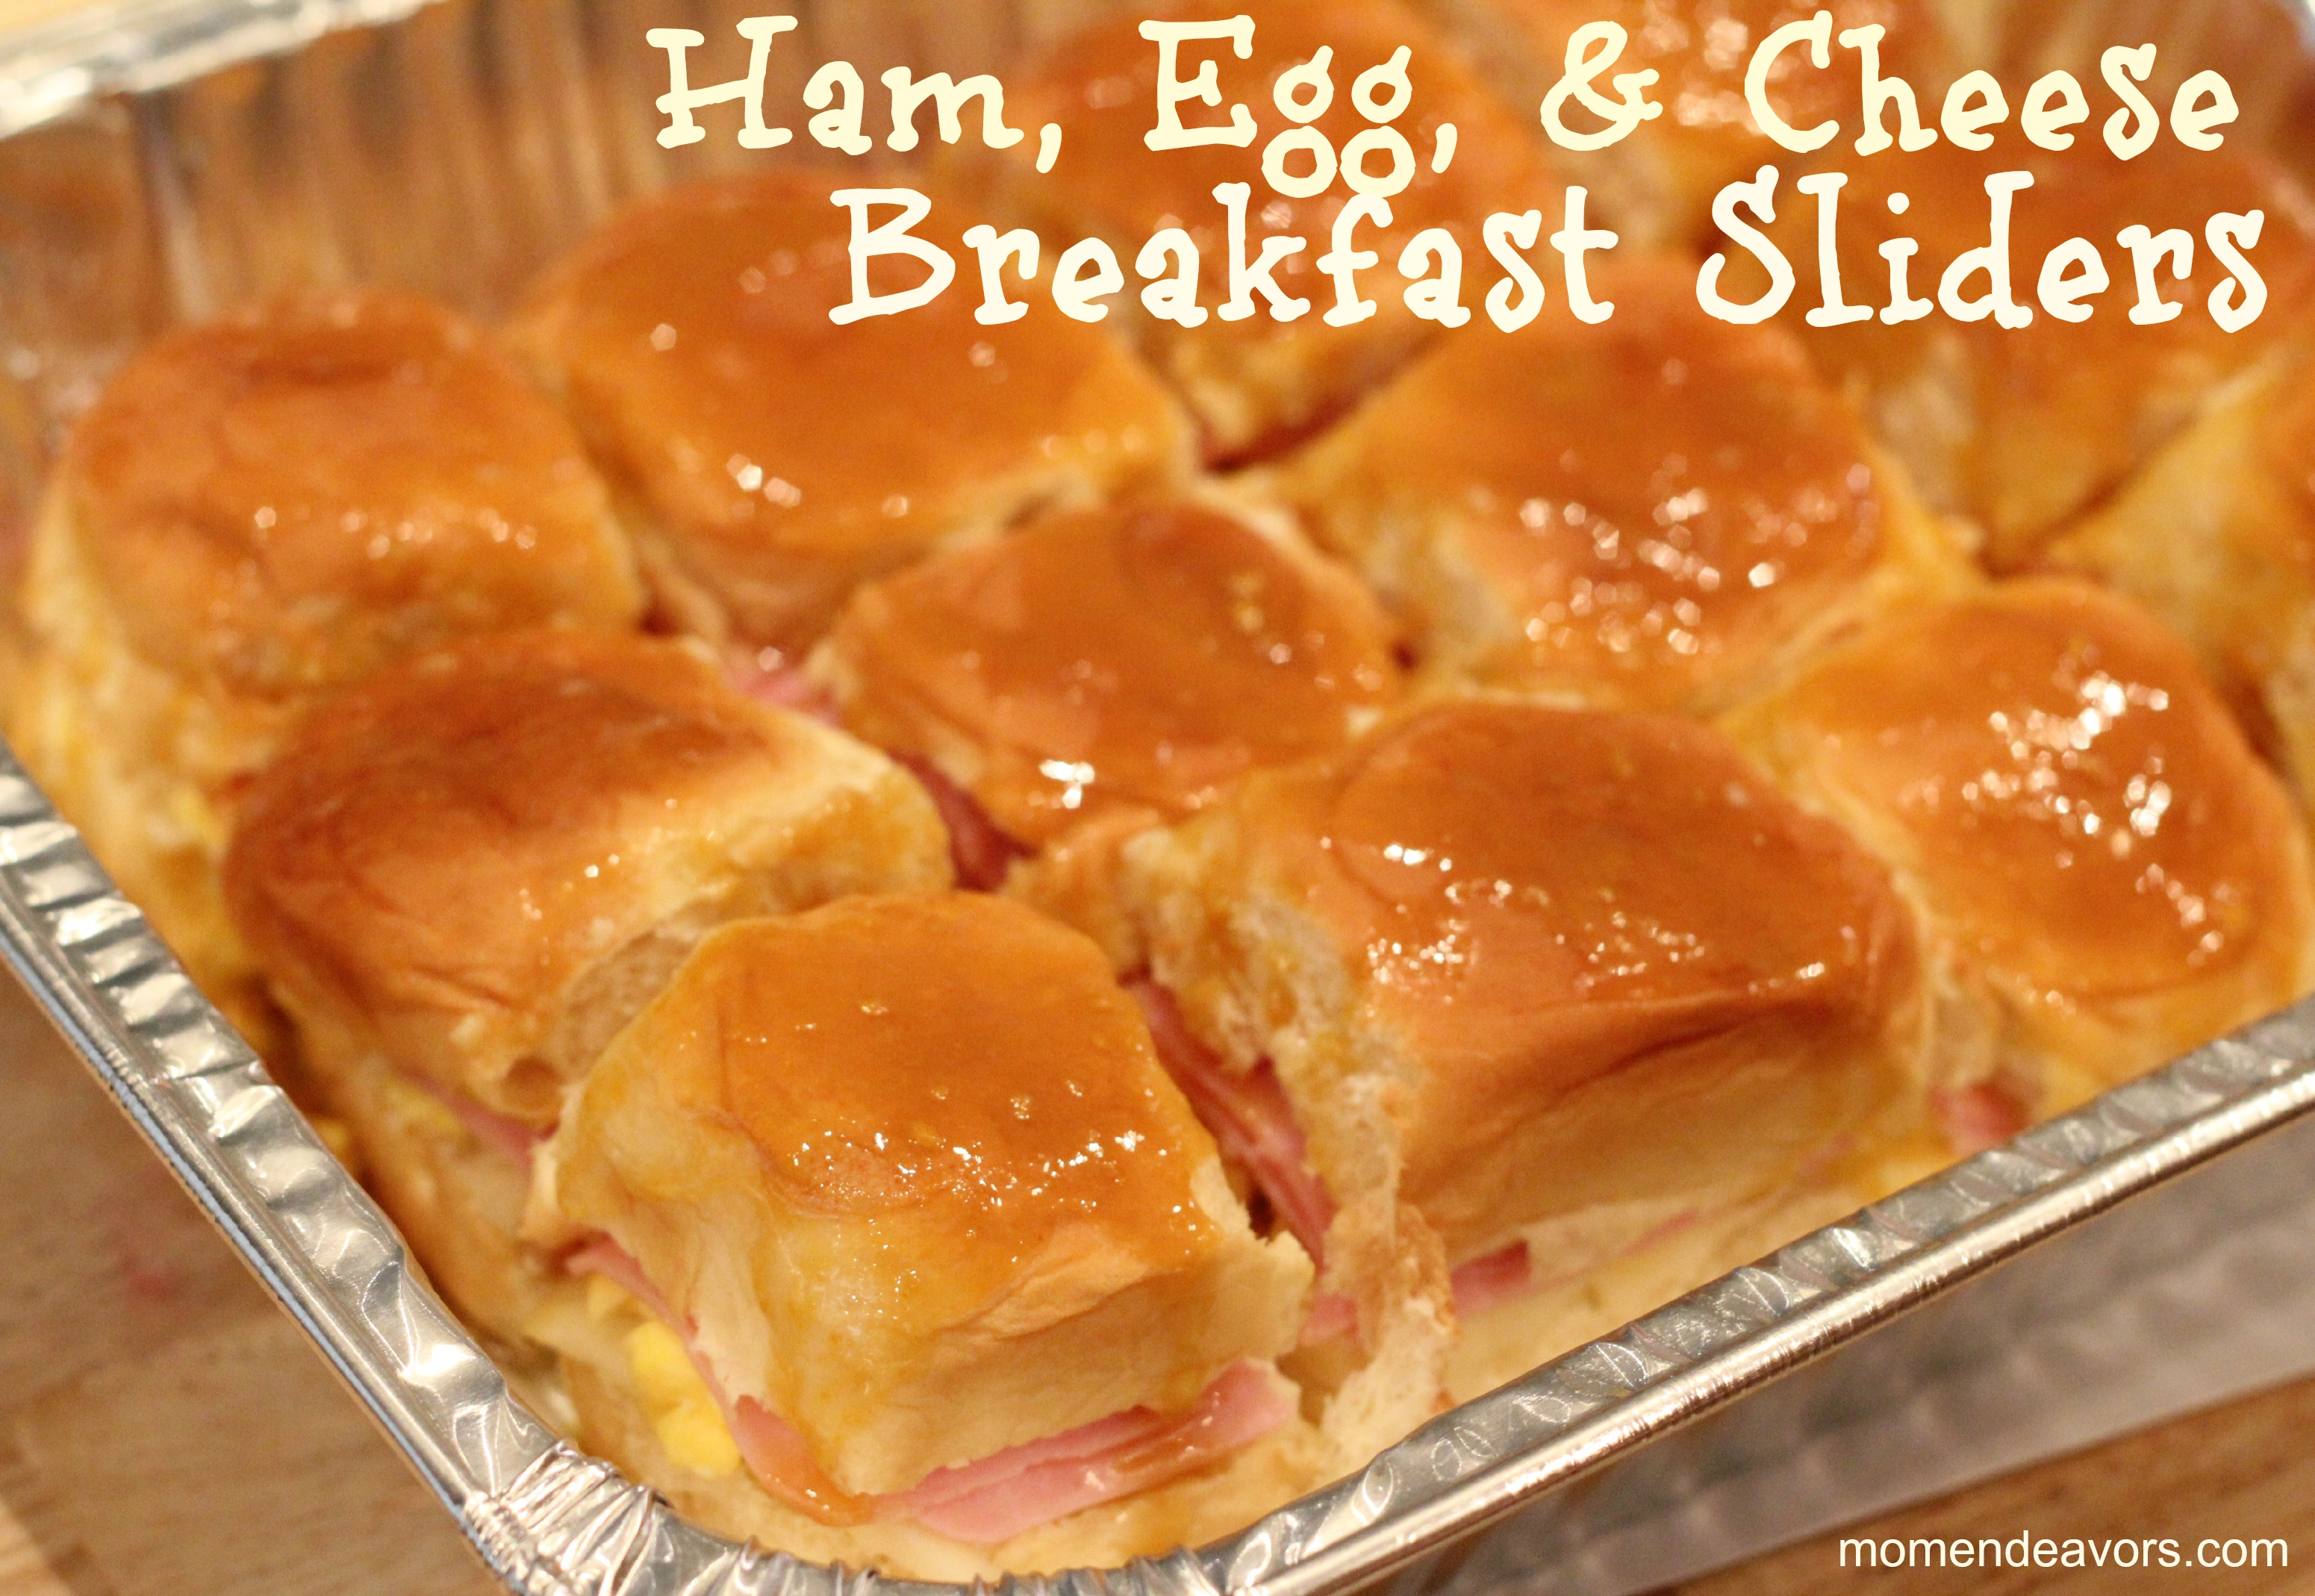 What to do with the leftover christmas ham 10 recipe ideas using ham or forumfinder Gallery